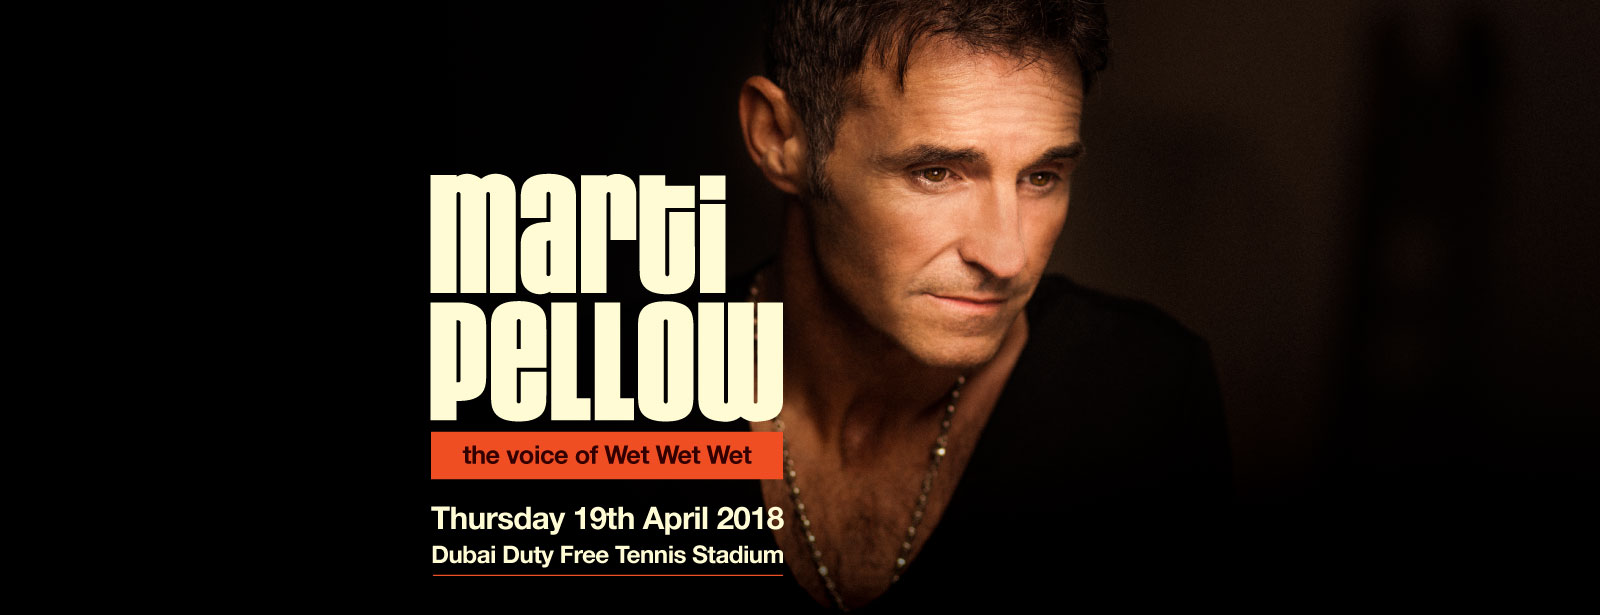 The Irish Village presents Marti Pellow Live in Dubai The Private Collection Tour